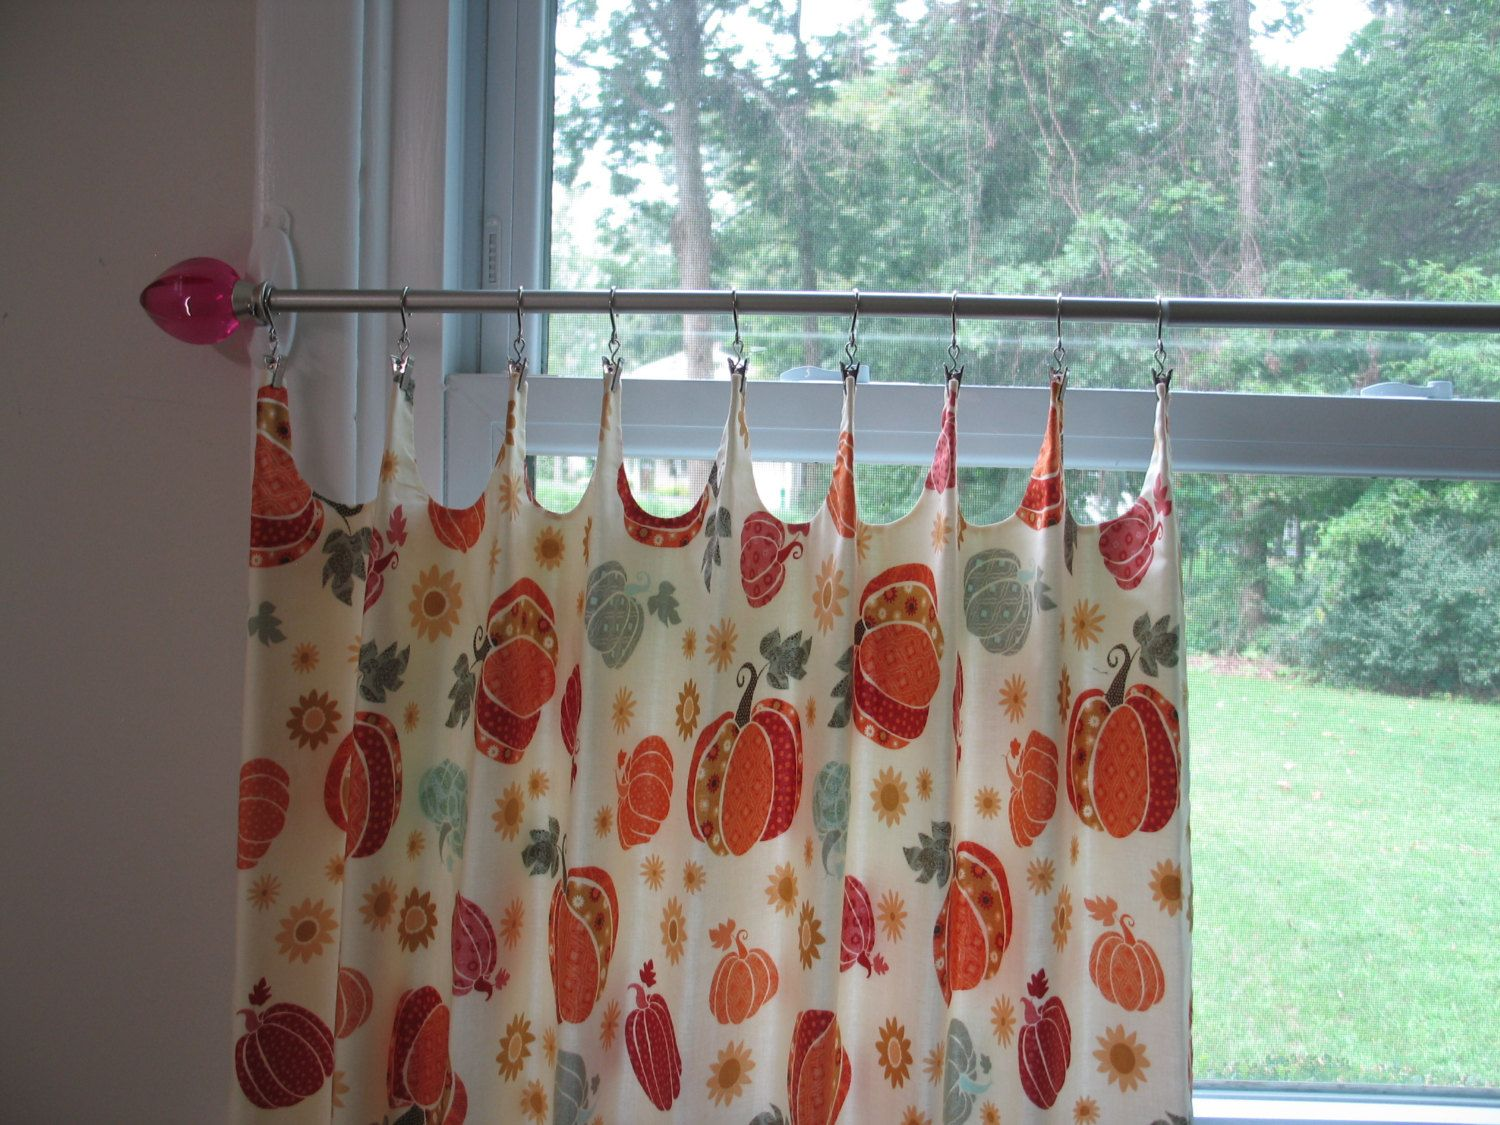 Thanksgiving Curtains Cafe Curtains Kitchen Curtains Pumpkins Scalloped Pair Kitchen Curtains Cafe Curtains Cafe Curtains Kitchen